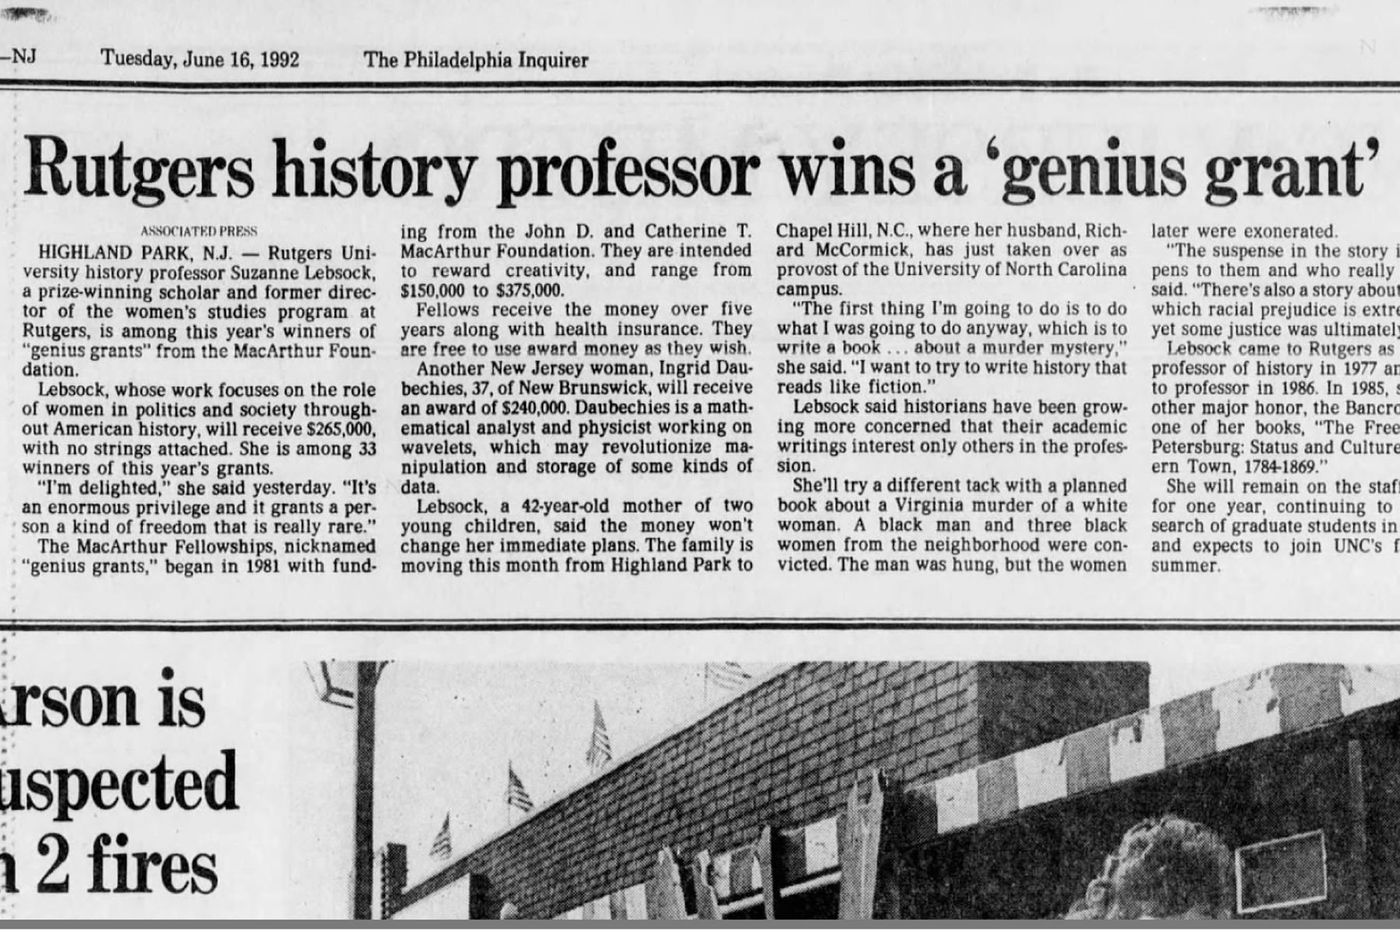 From The Inquirer archives: Rutgers University history professor wins MacArthur Foundation genius grant